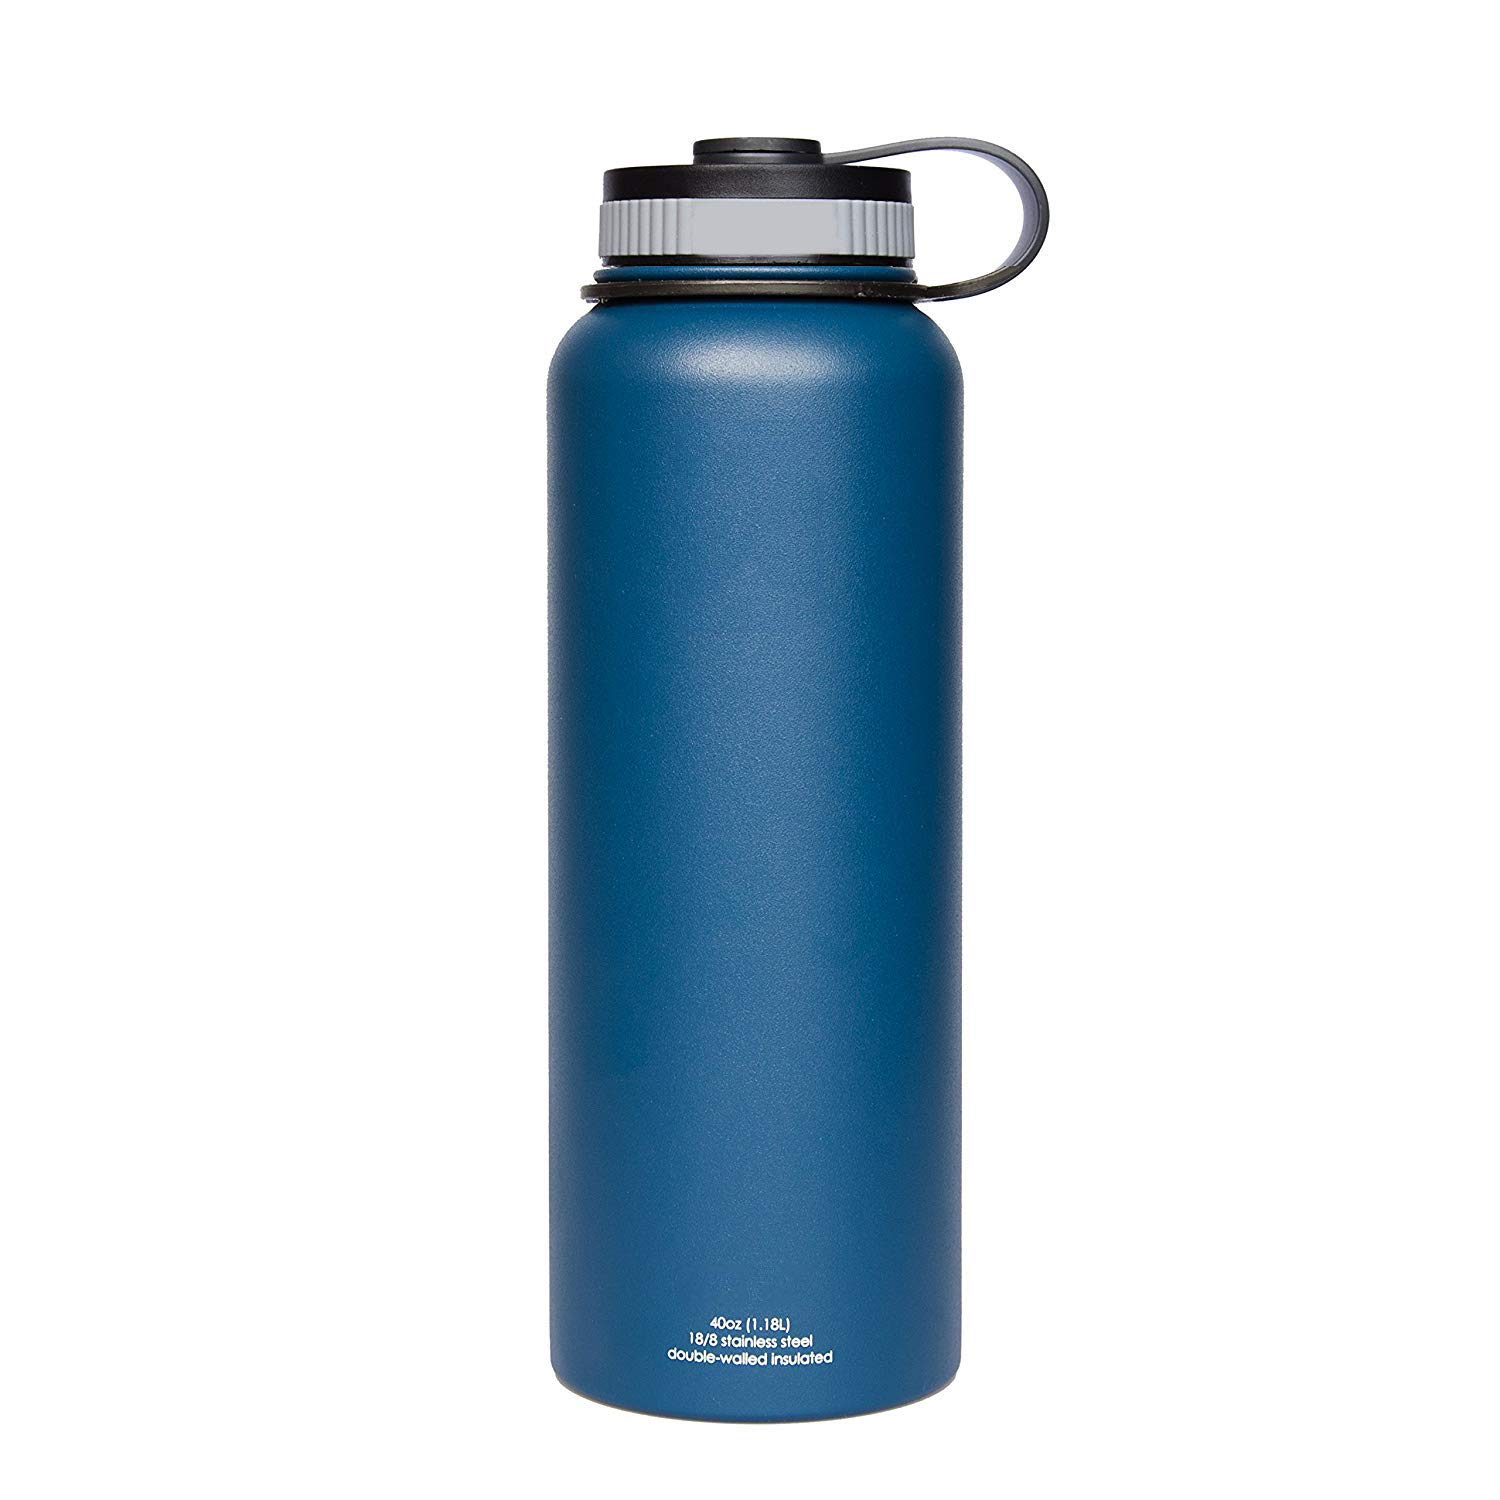 JTTVO Bottle - 40 Oz Double Insulated Stainless Steel Water Bottle (Blue)